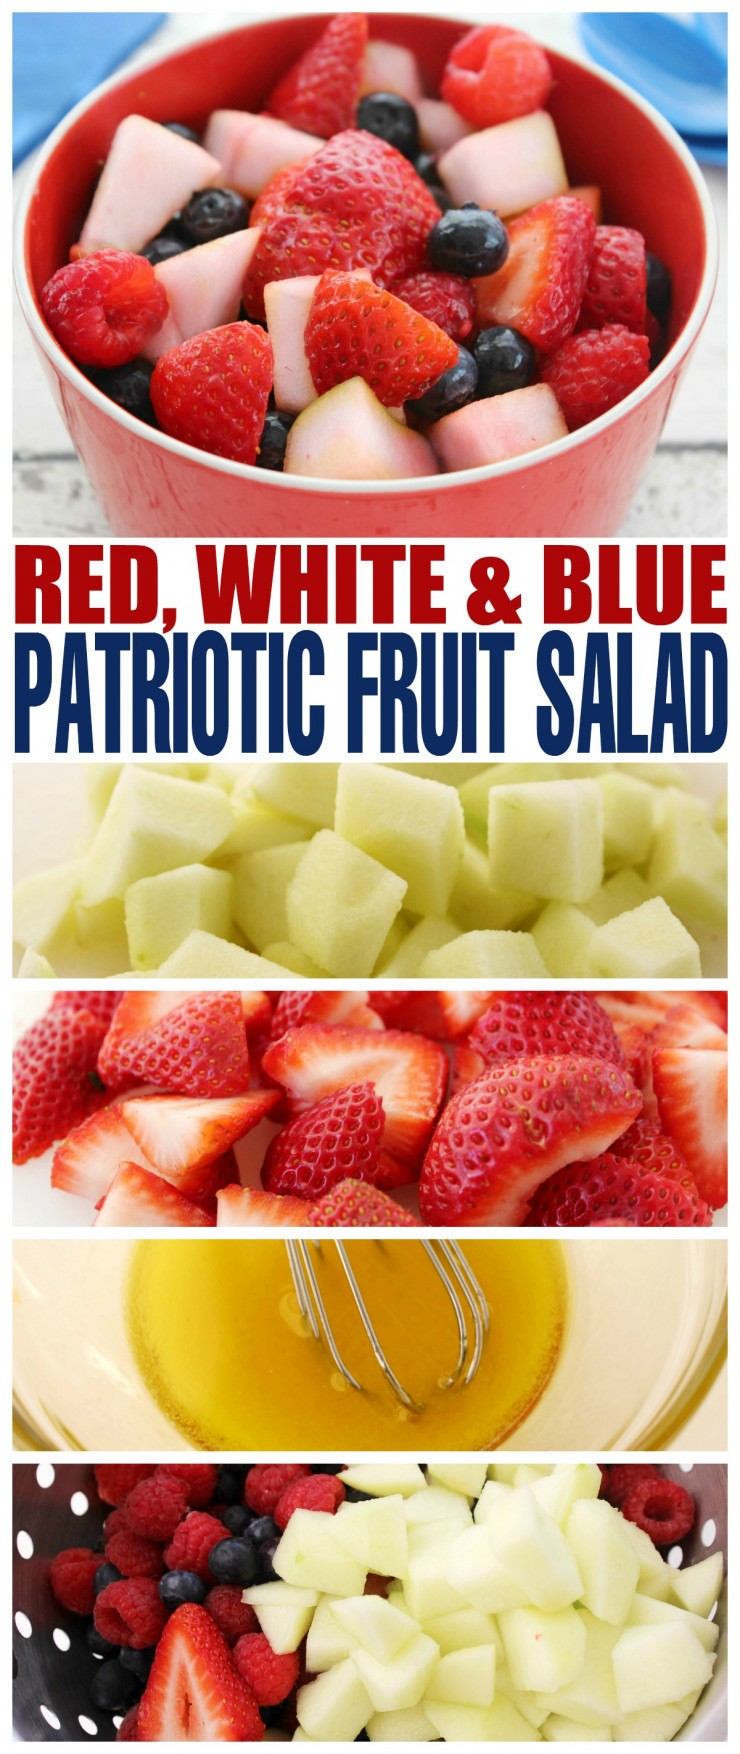 If you are planning a patriotic celebration for memorial day or the 4th of July, consider serving up this delicious patriotic fruit salad.